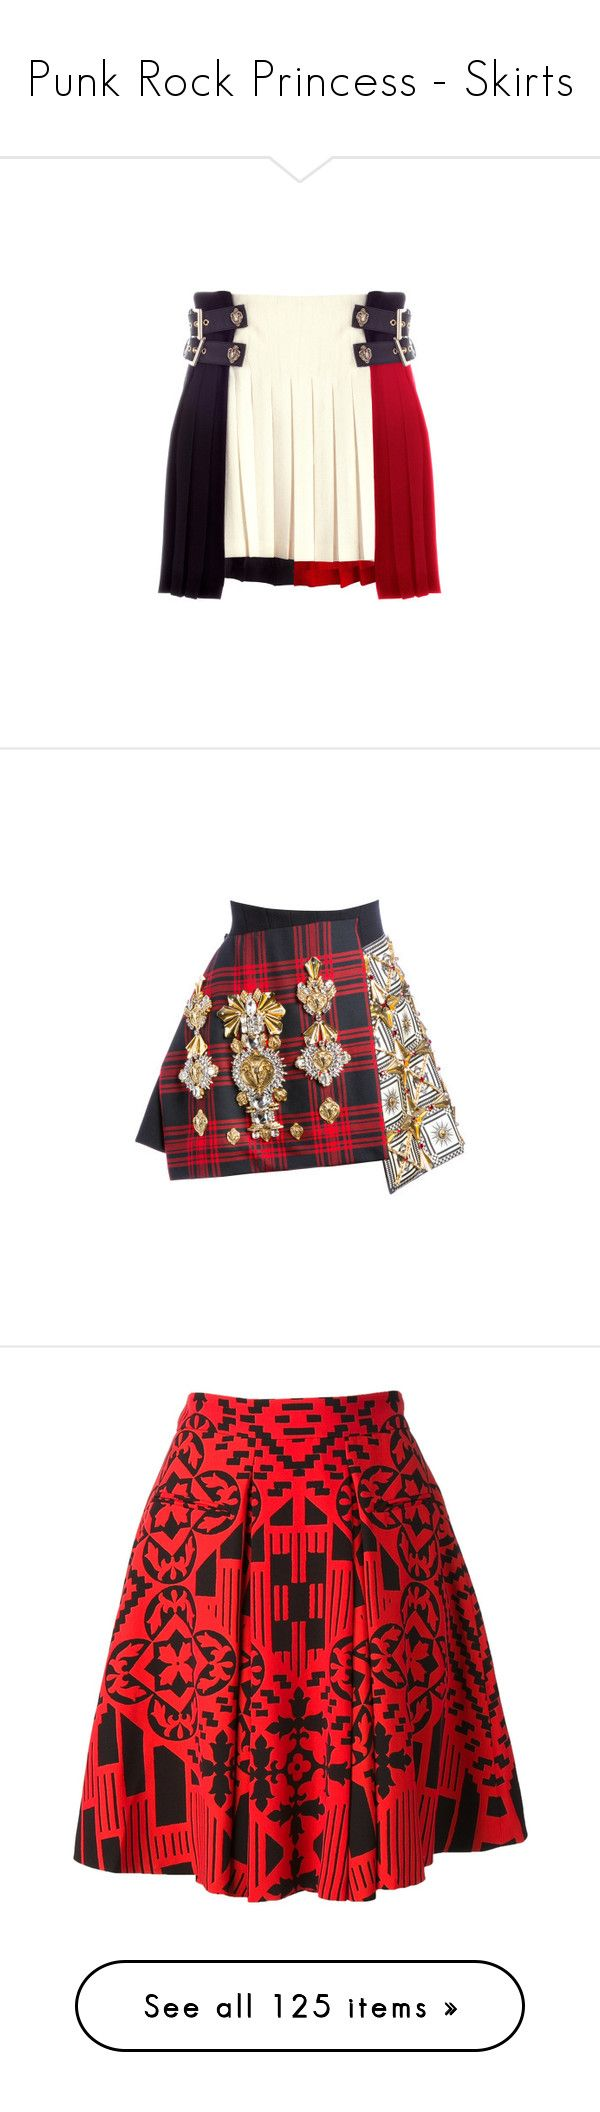 """""""Punk Rock Princess - Skirts"""" by metalheavy ❤ liked on Polyvore featuring skirts, bottoms, faldas, woolen skirt, wool skirt, short skirts, short wool skirt, white crepe skirt, red and red tartan skirt"""